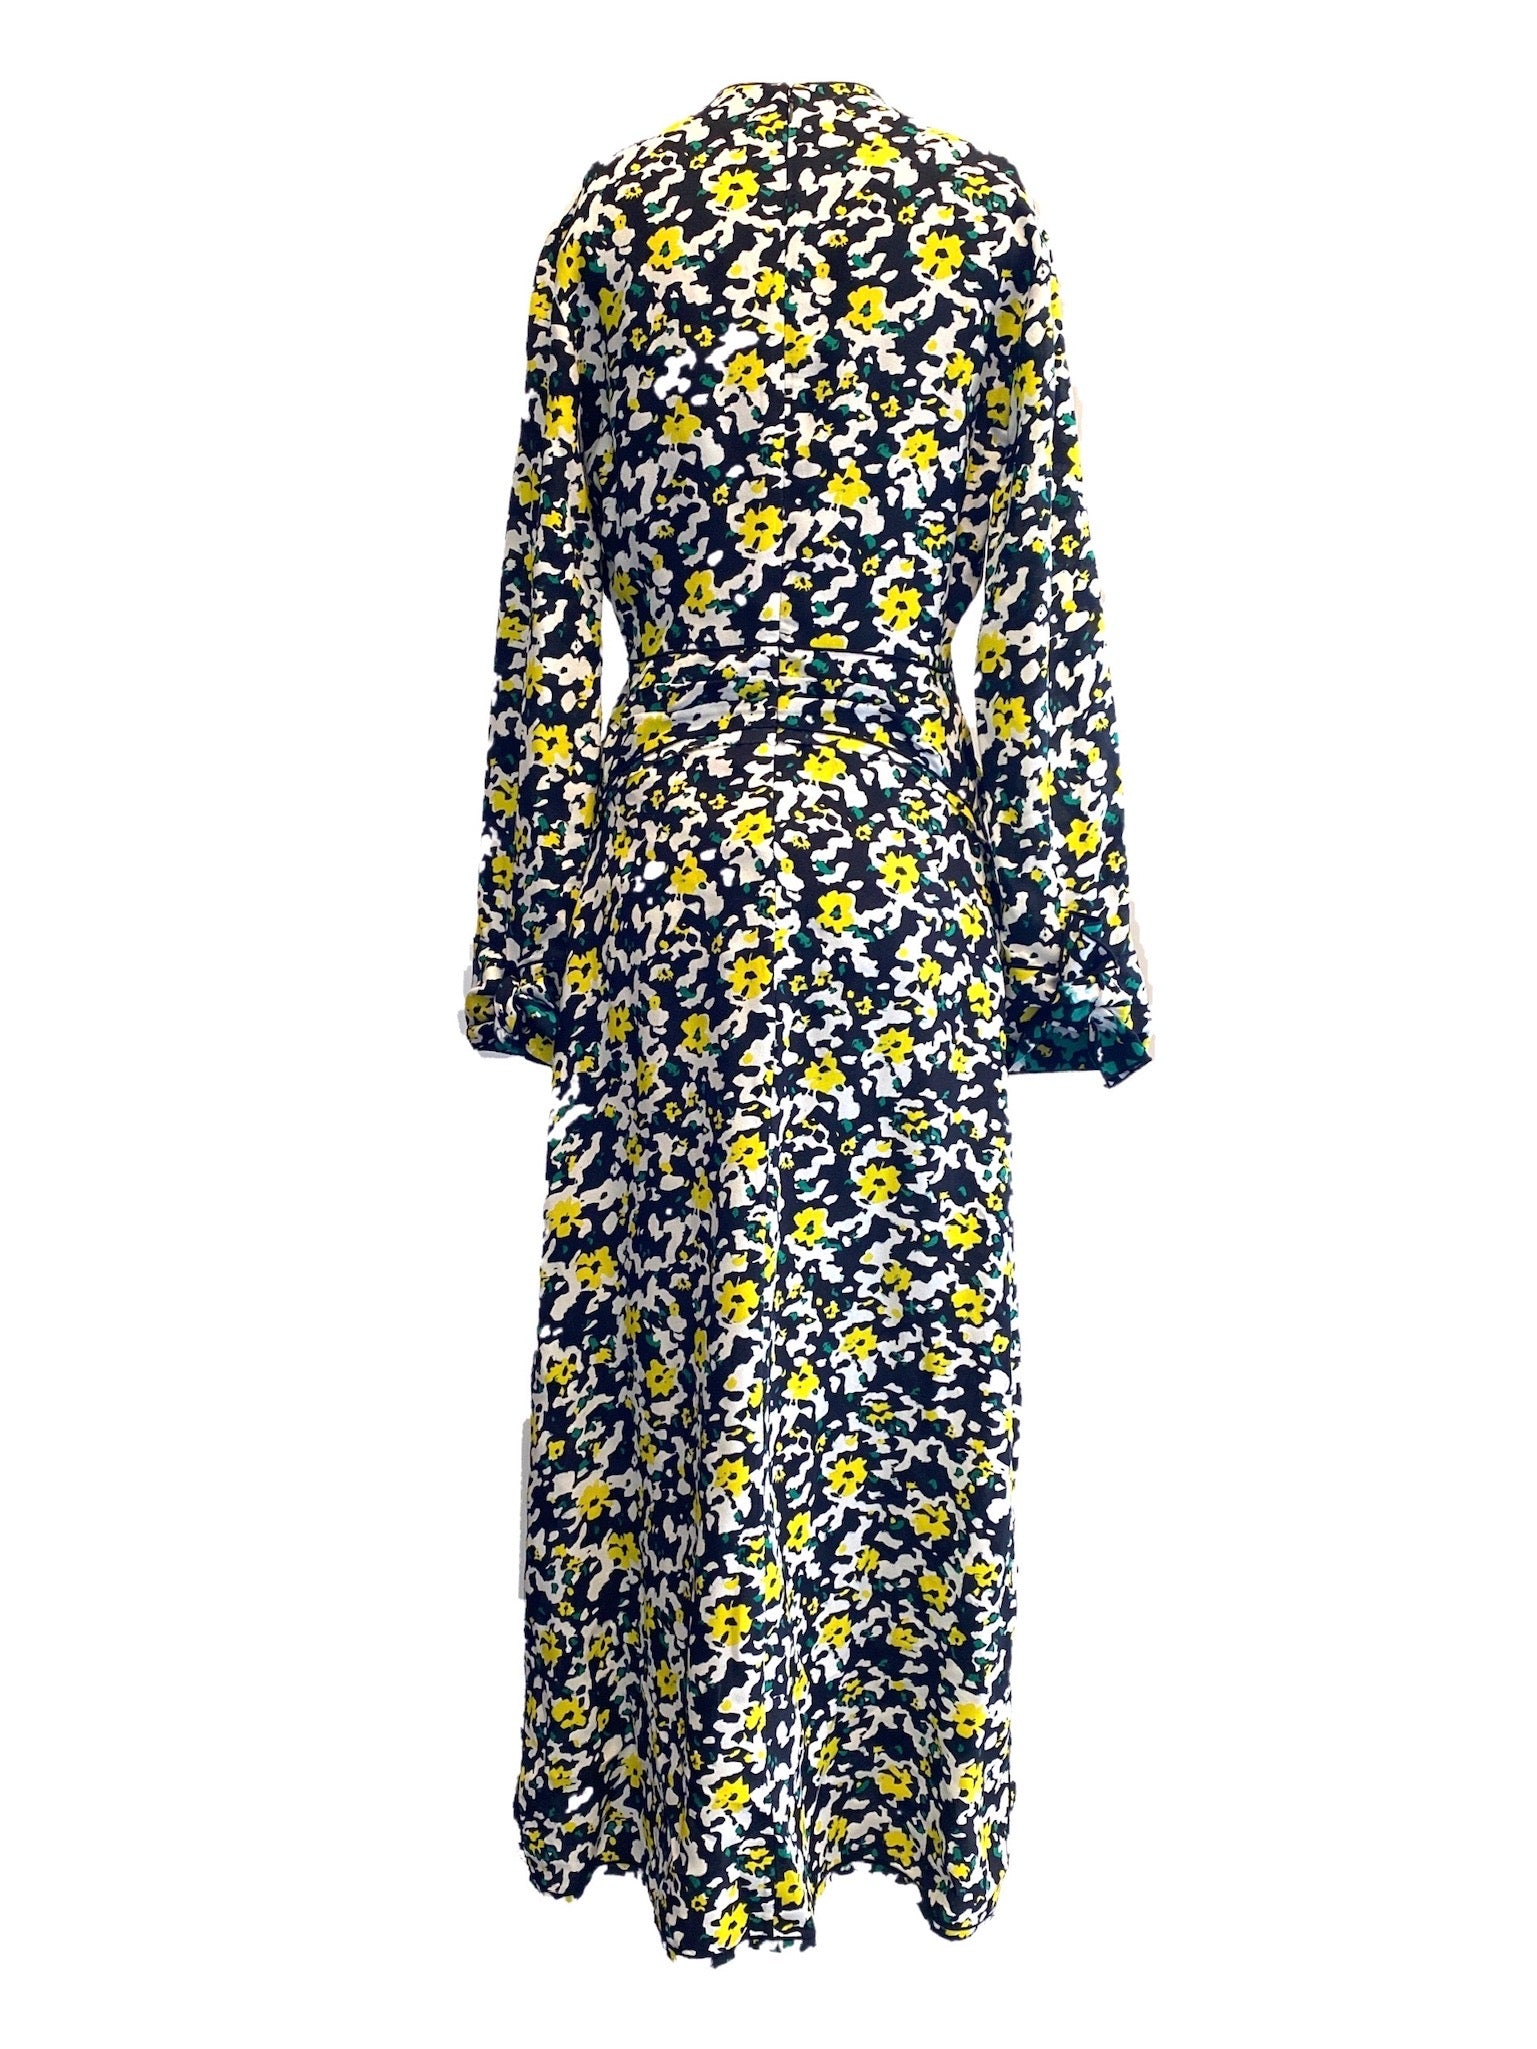 Proenza Schouler Navy and Yellow Floral Print Deep V Maxi Dress Size 6